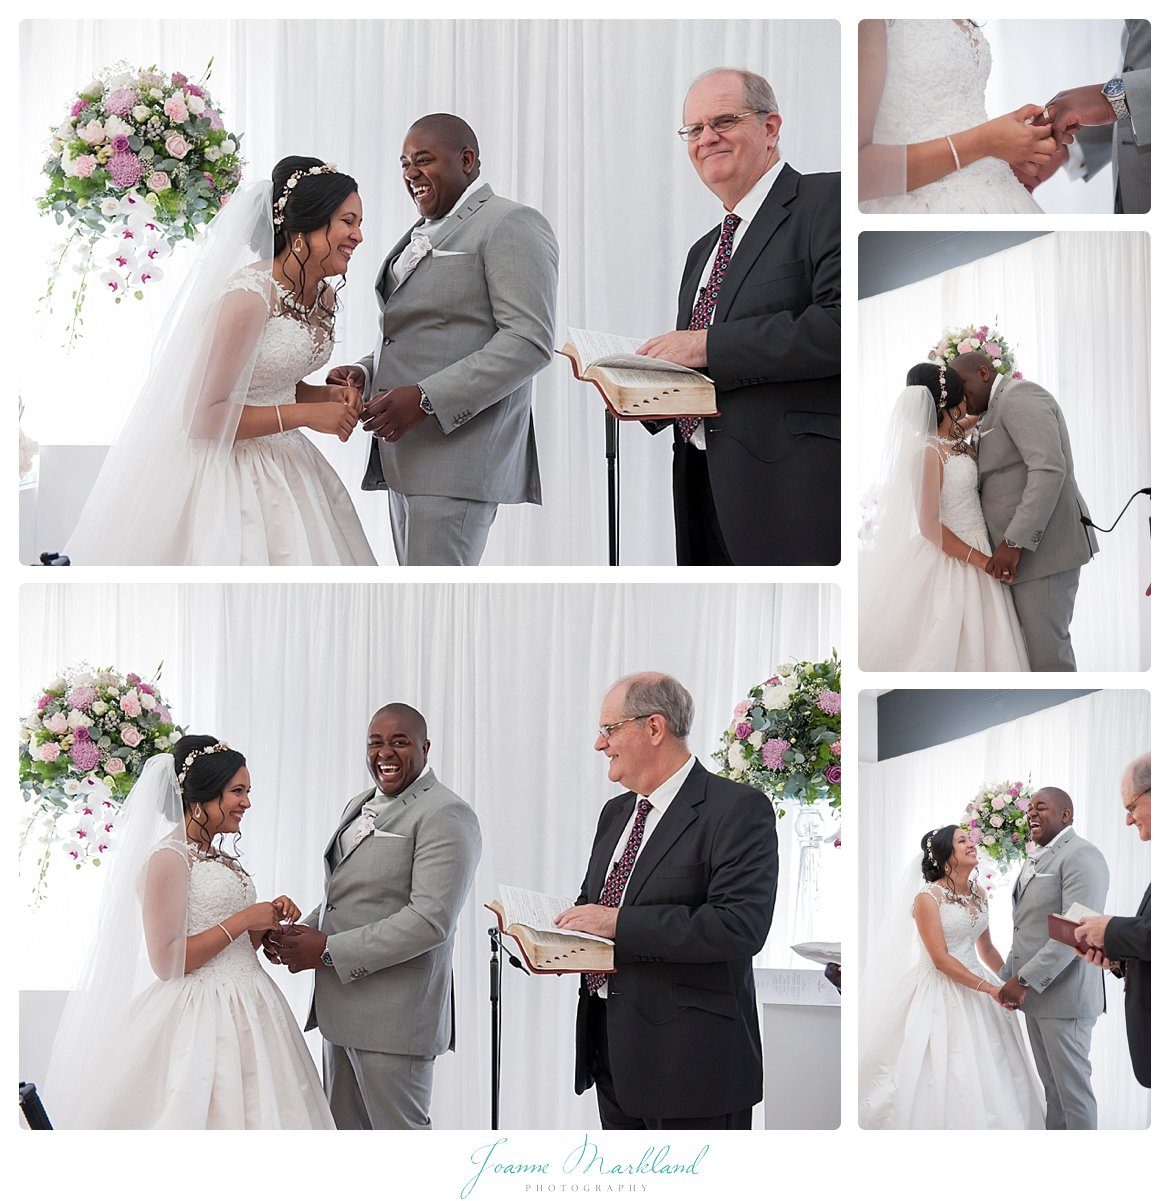 Val_de_vie_wedding_joanne_markland_photography_paarl-029